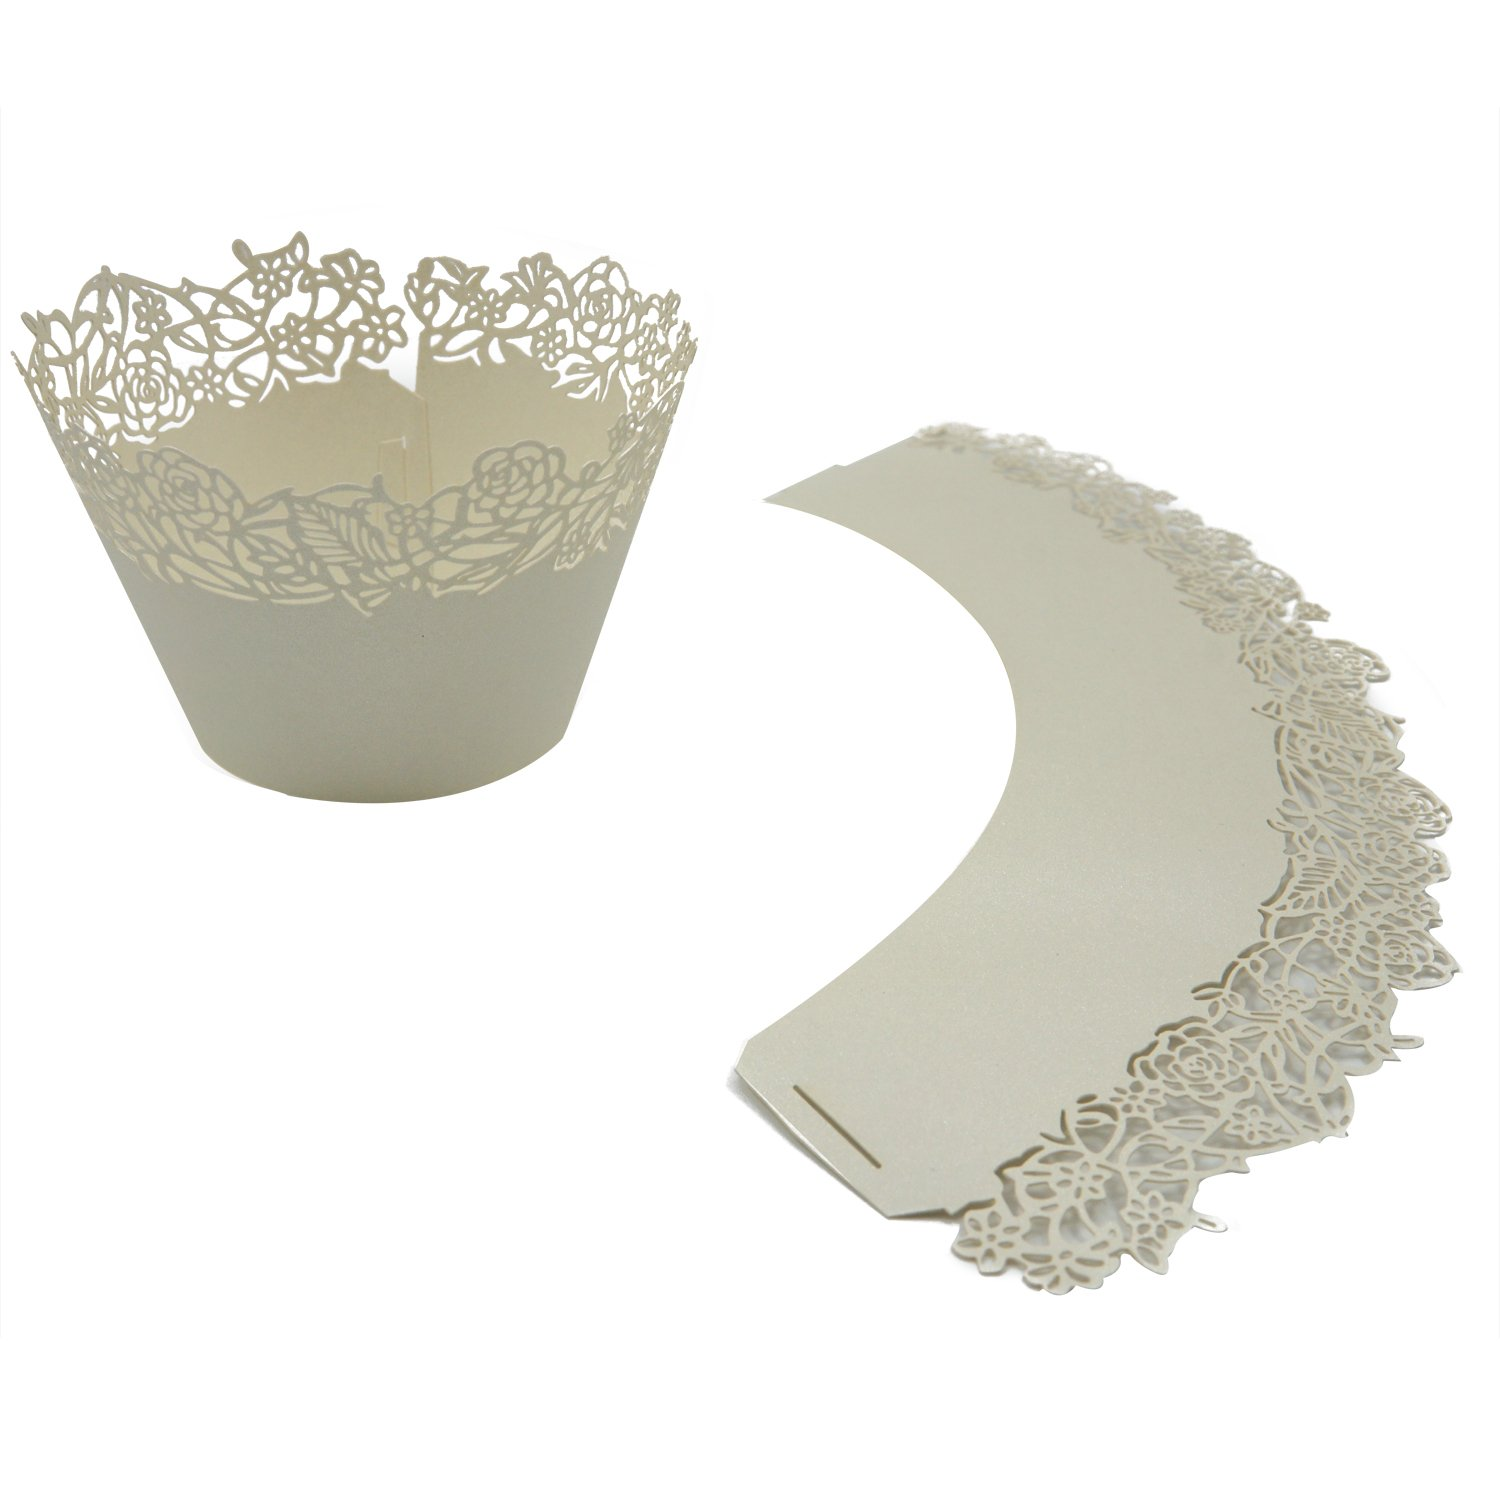 Cupcake Wrappers Pack of 50 Beige Filigree Artistic Bake Cake Paper Cups Little Vine Lace Laser Cut Liner Baking Cup Muffin Case Trays for Wedding Party Birthday Decoration By KEIVA Beige